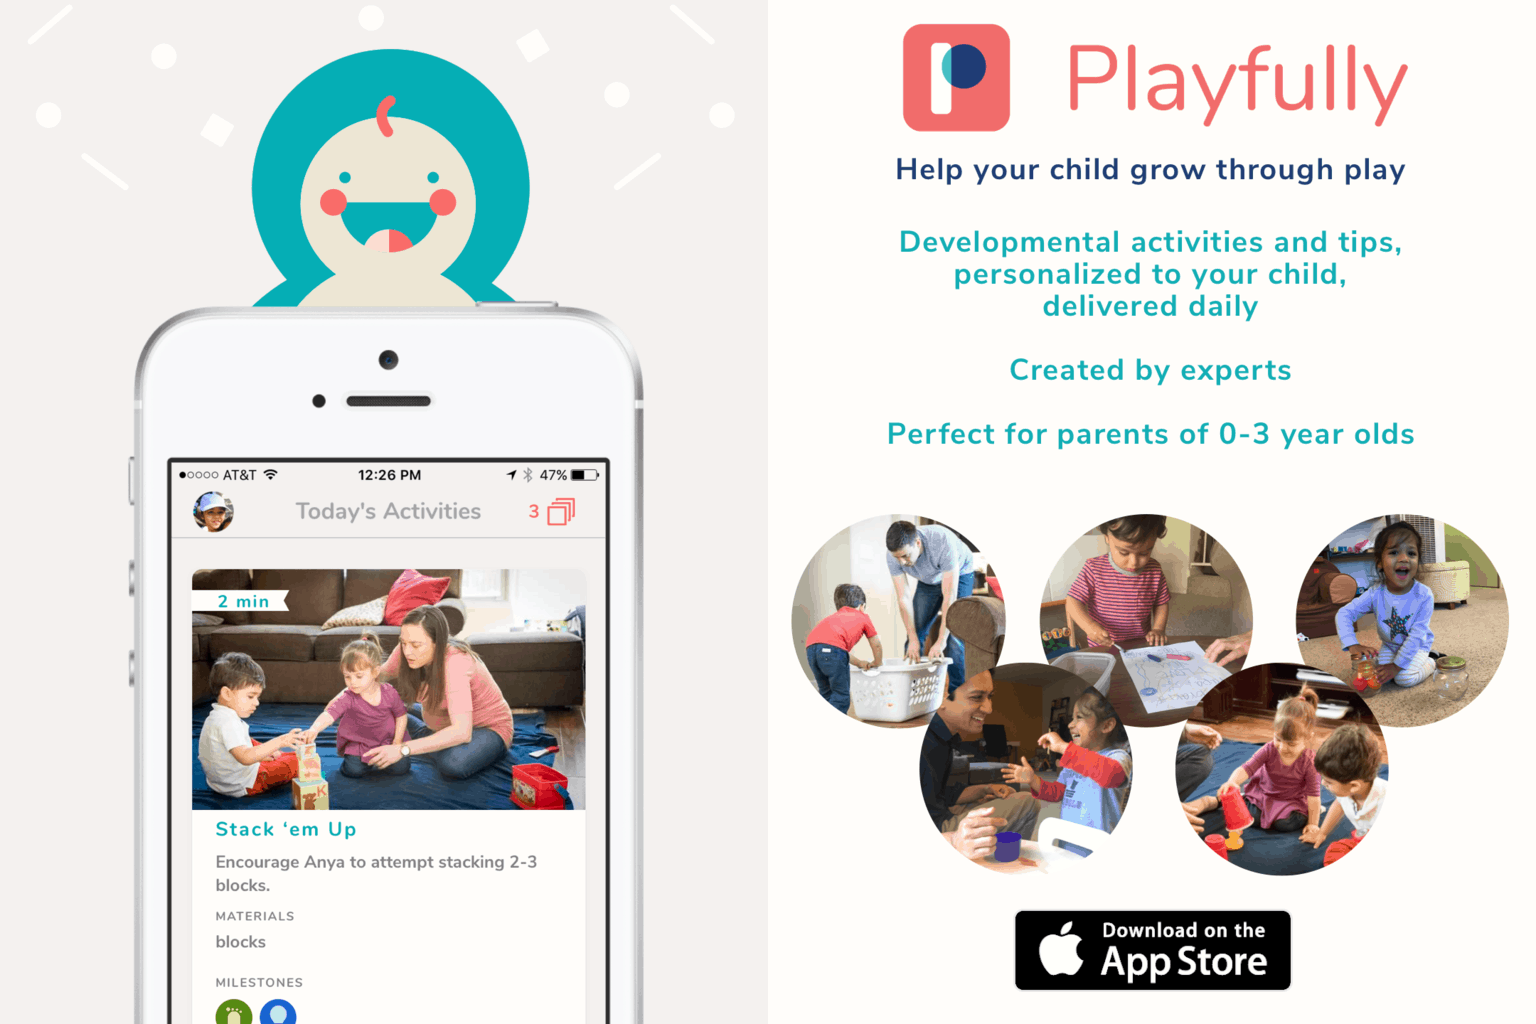 SOTM - Playfully: Helping You Mark Your Child's Growth Milestones as a Solopreneur